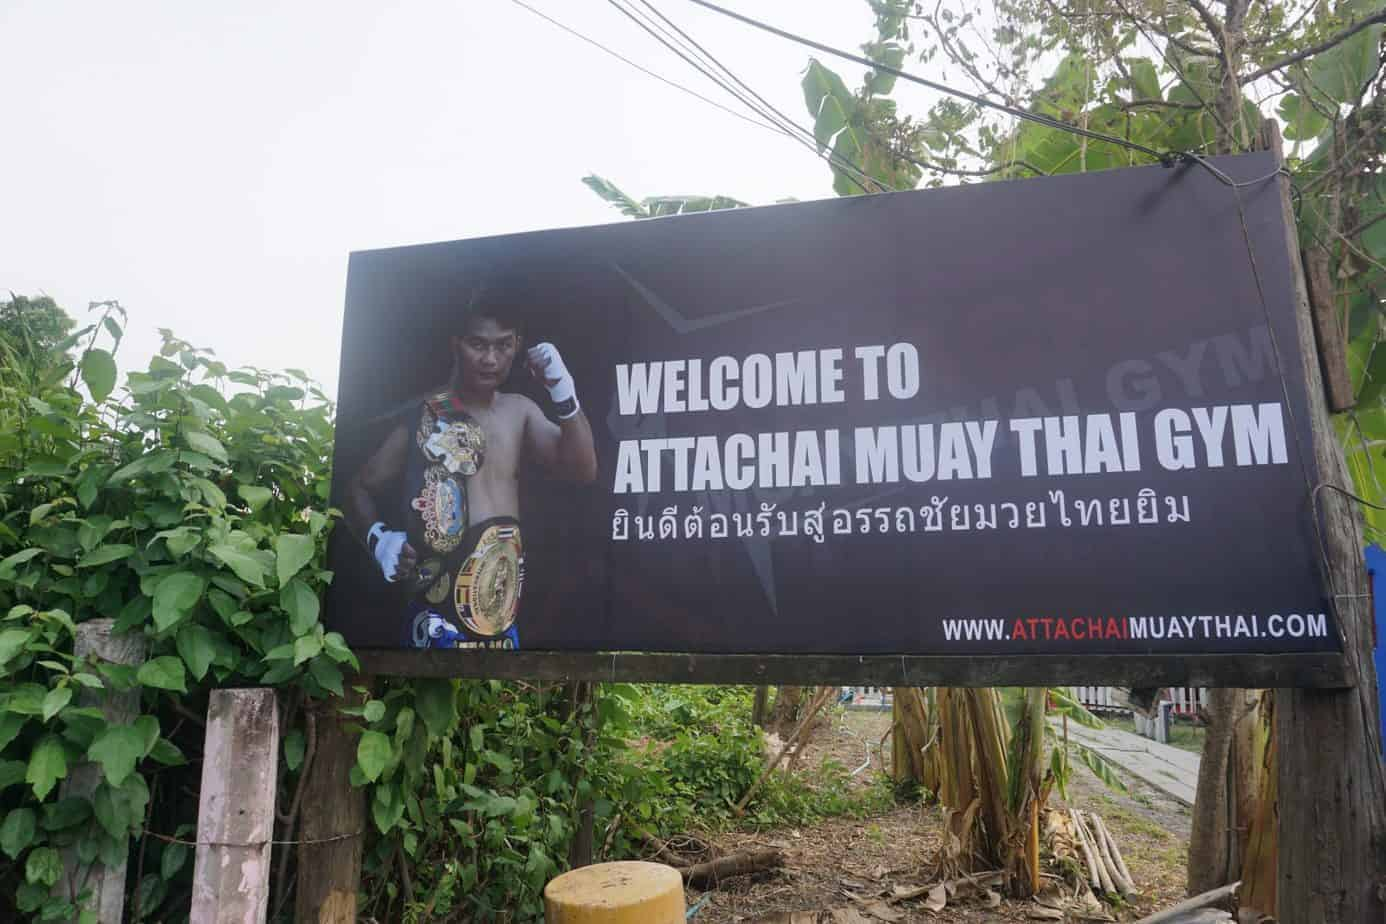 The location of Attachai Muay Thai Gym, Bangkok.